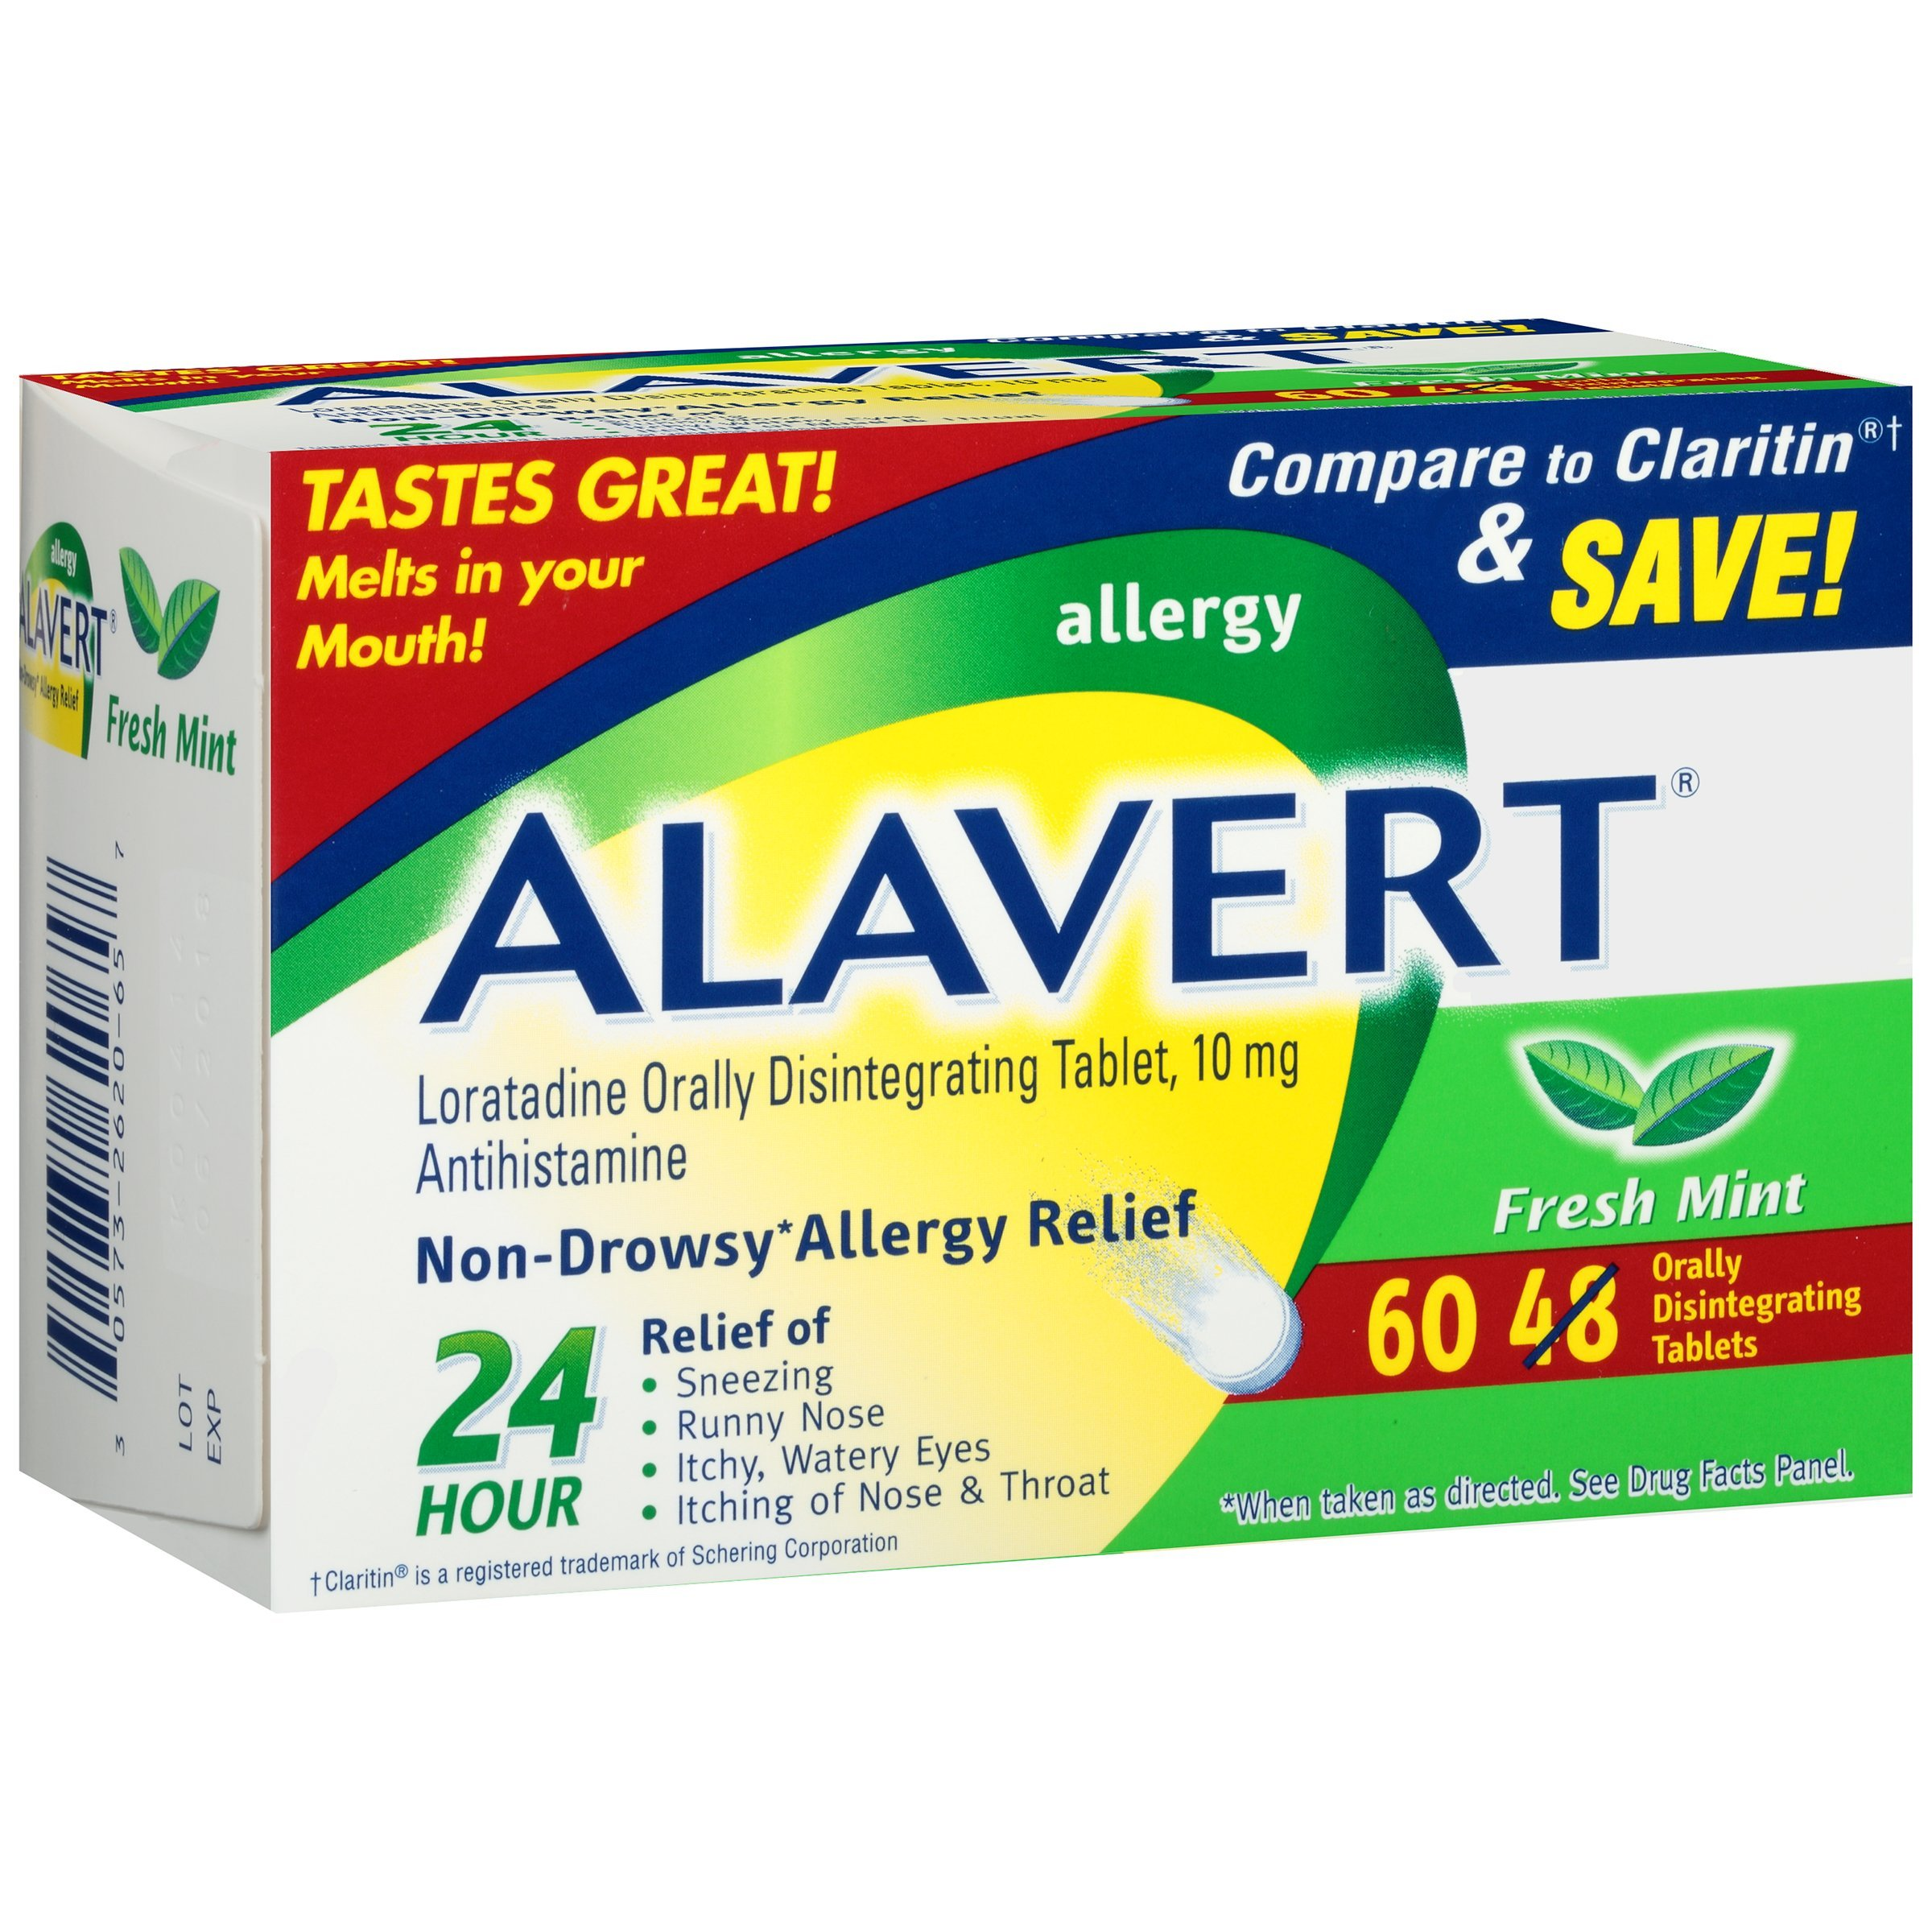 Over-the-Counter Allergy Medications